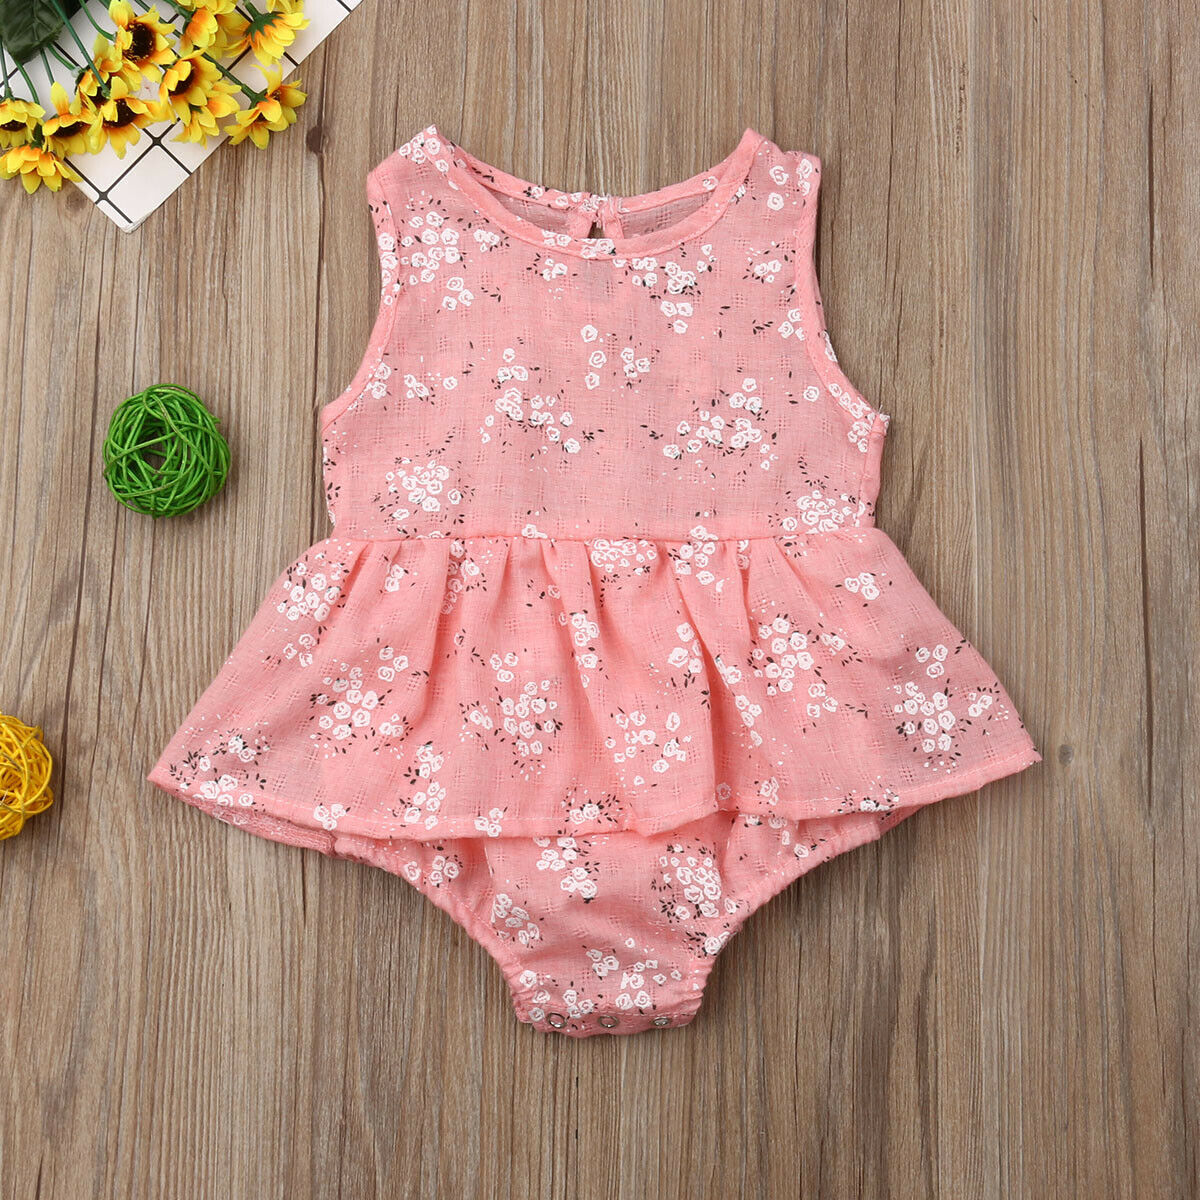 ba6daac51 Newborn Toddler Baby Girl Clothes Ruffle Floral Romper Sleeveless Jumpsuit  Cotton Outfits Sunsuit Clothes ~ Super Deal June 2019